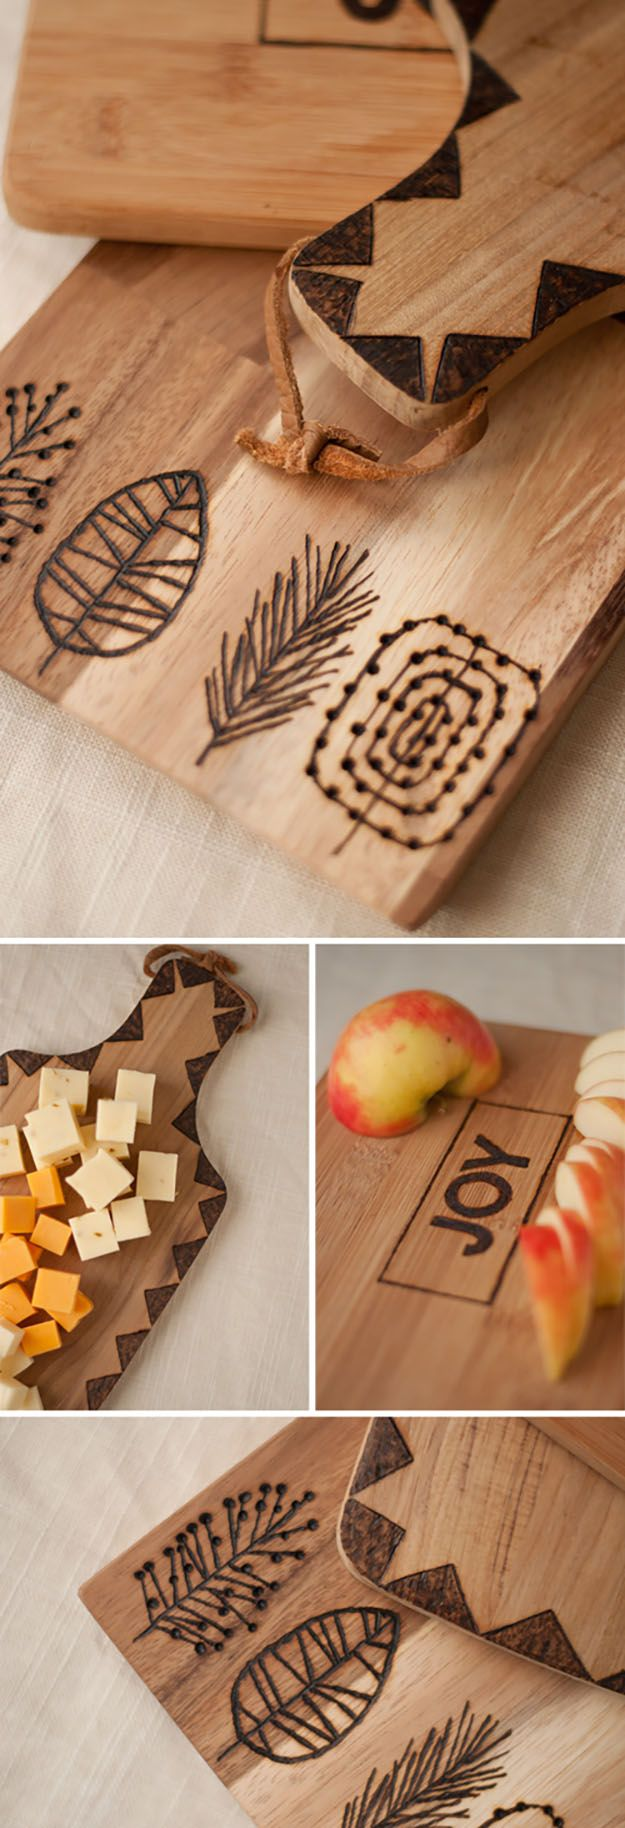 25+ unique Diy cutting board ideas on Pinterest | DIY Valentine\u0027s ...